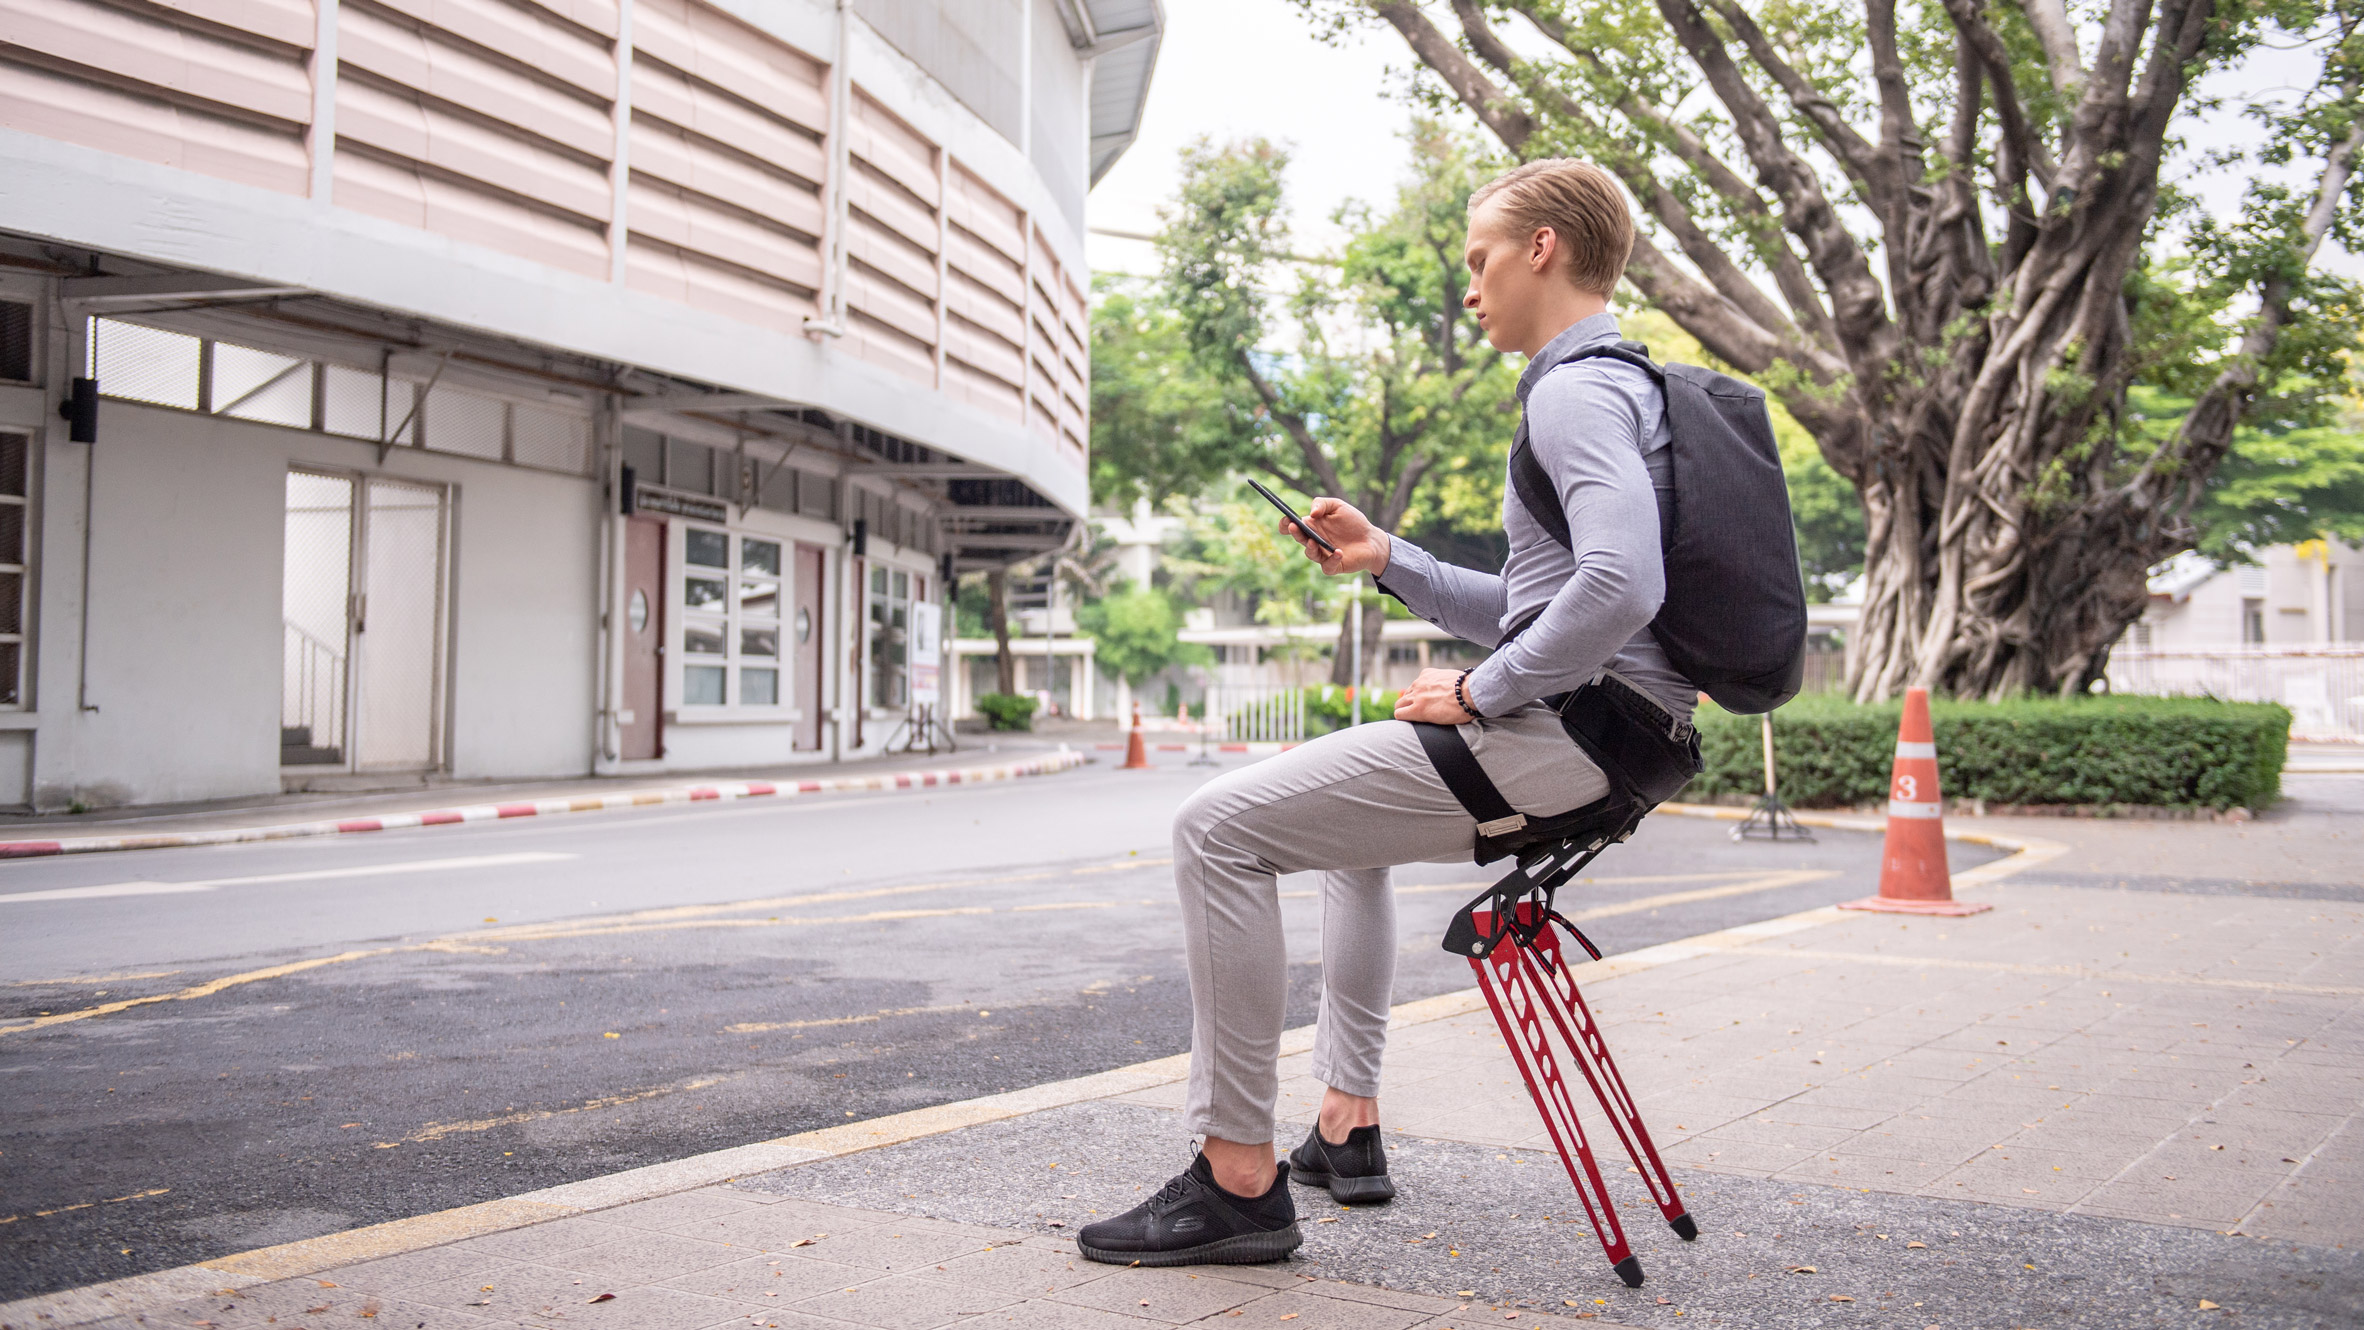 Lex by Astride is a wearable chair that allows its user to sit anywhere